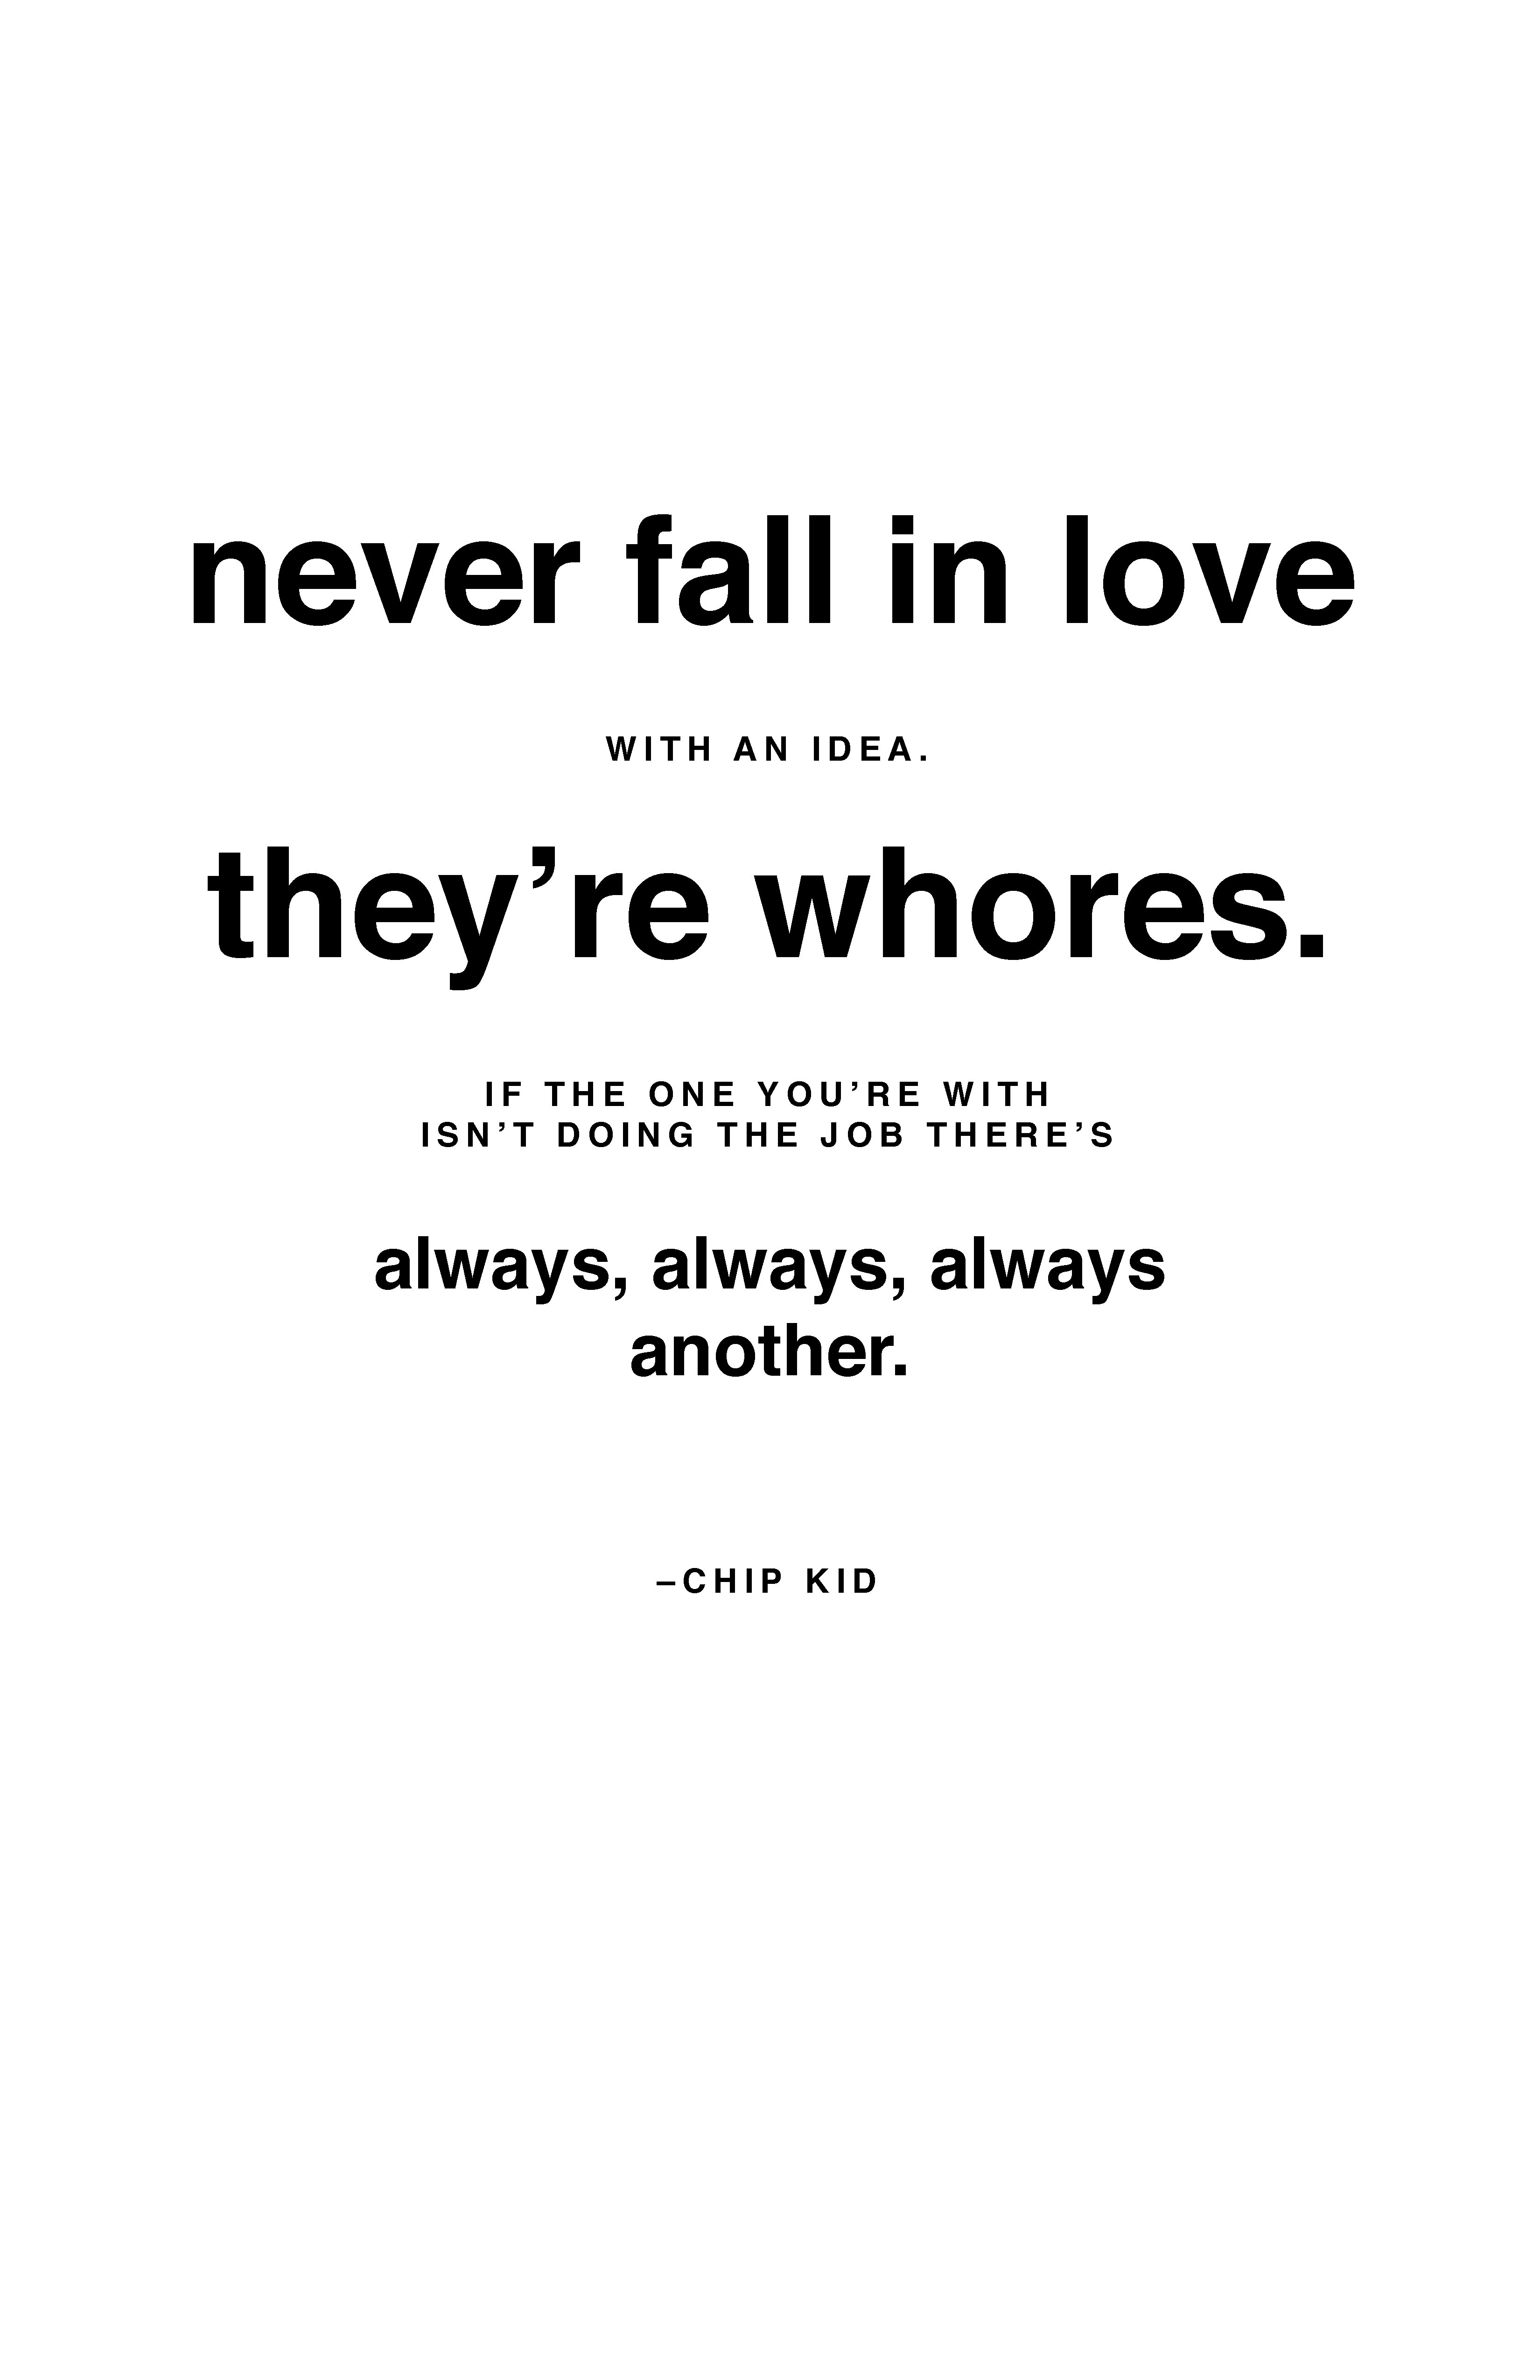 never fall in love with an idea. they're whores. if the one you're